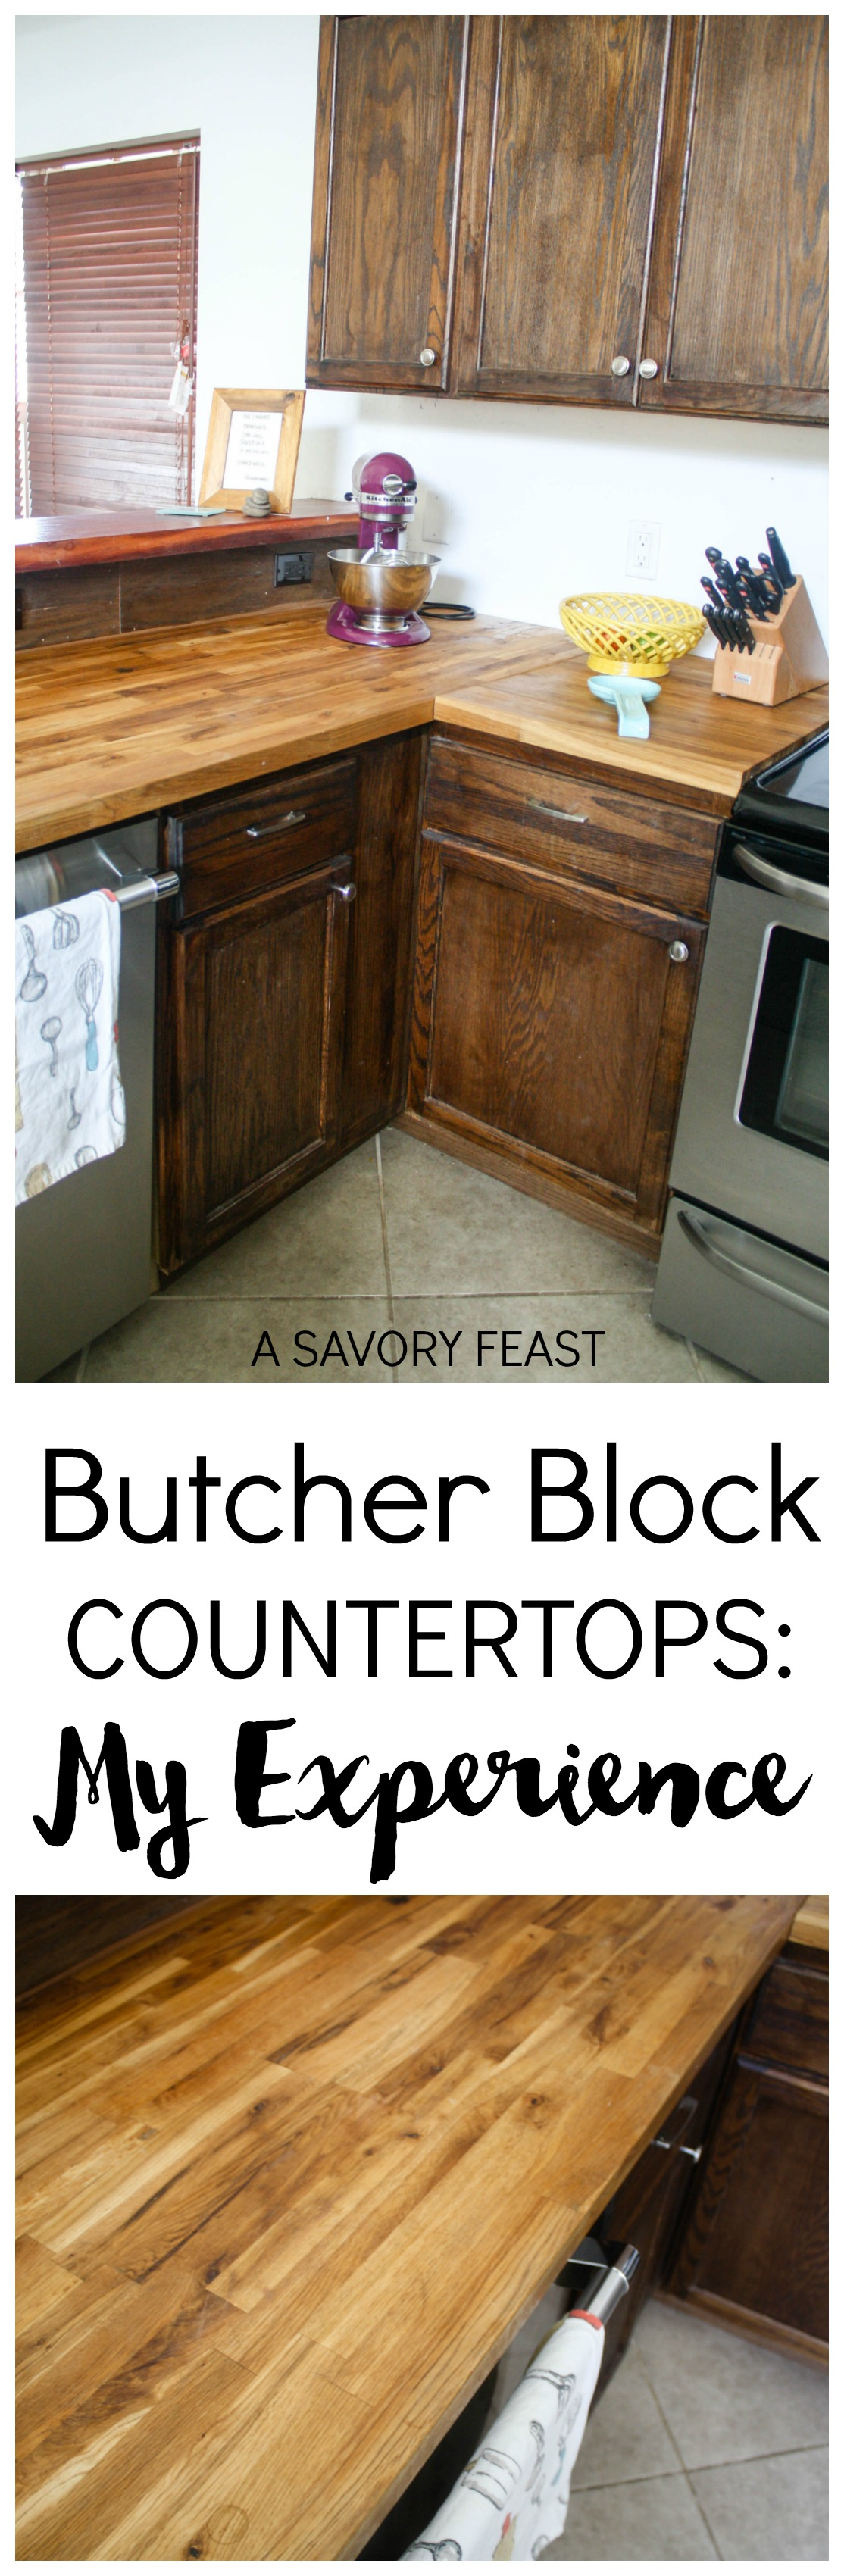 Butcher Block Countertops: My experience after six months, including  initial maintenance and everyday use